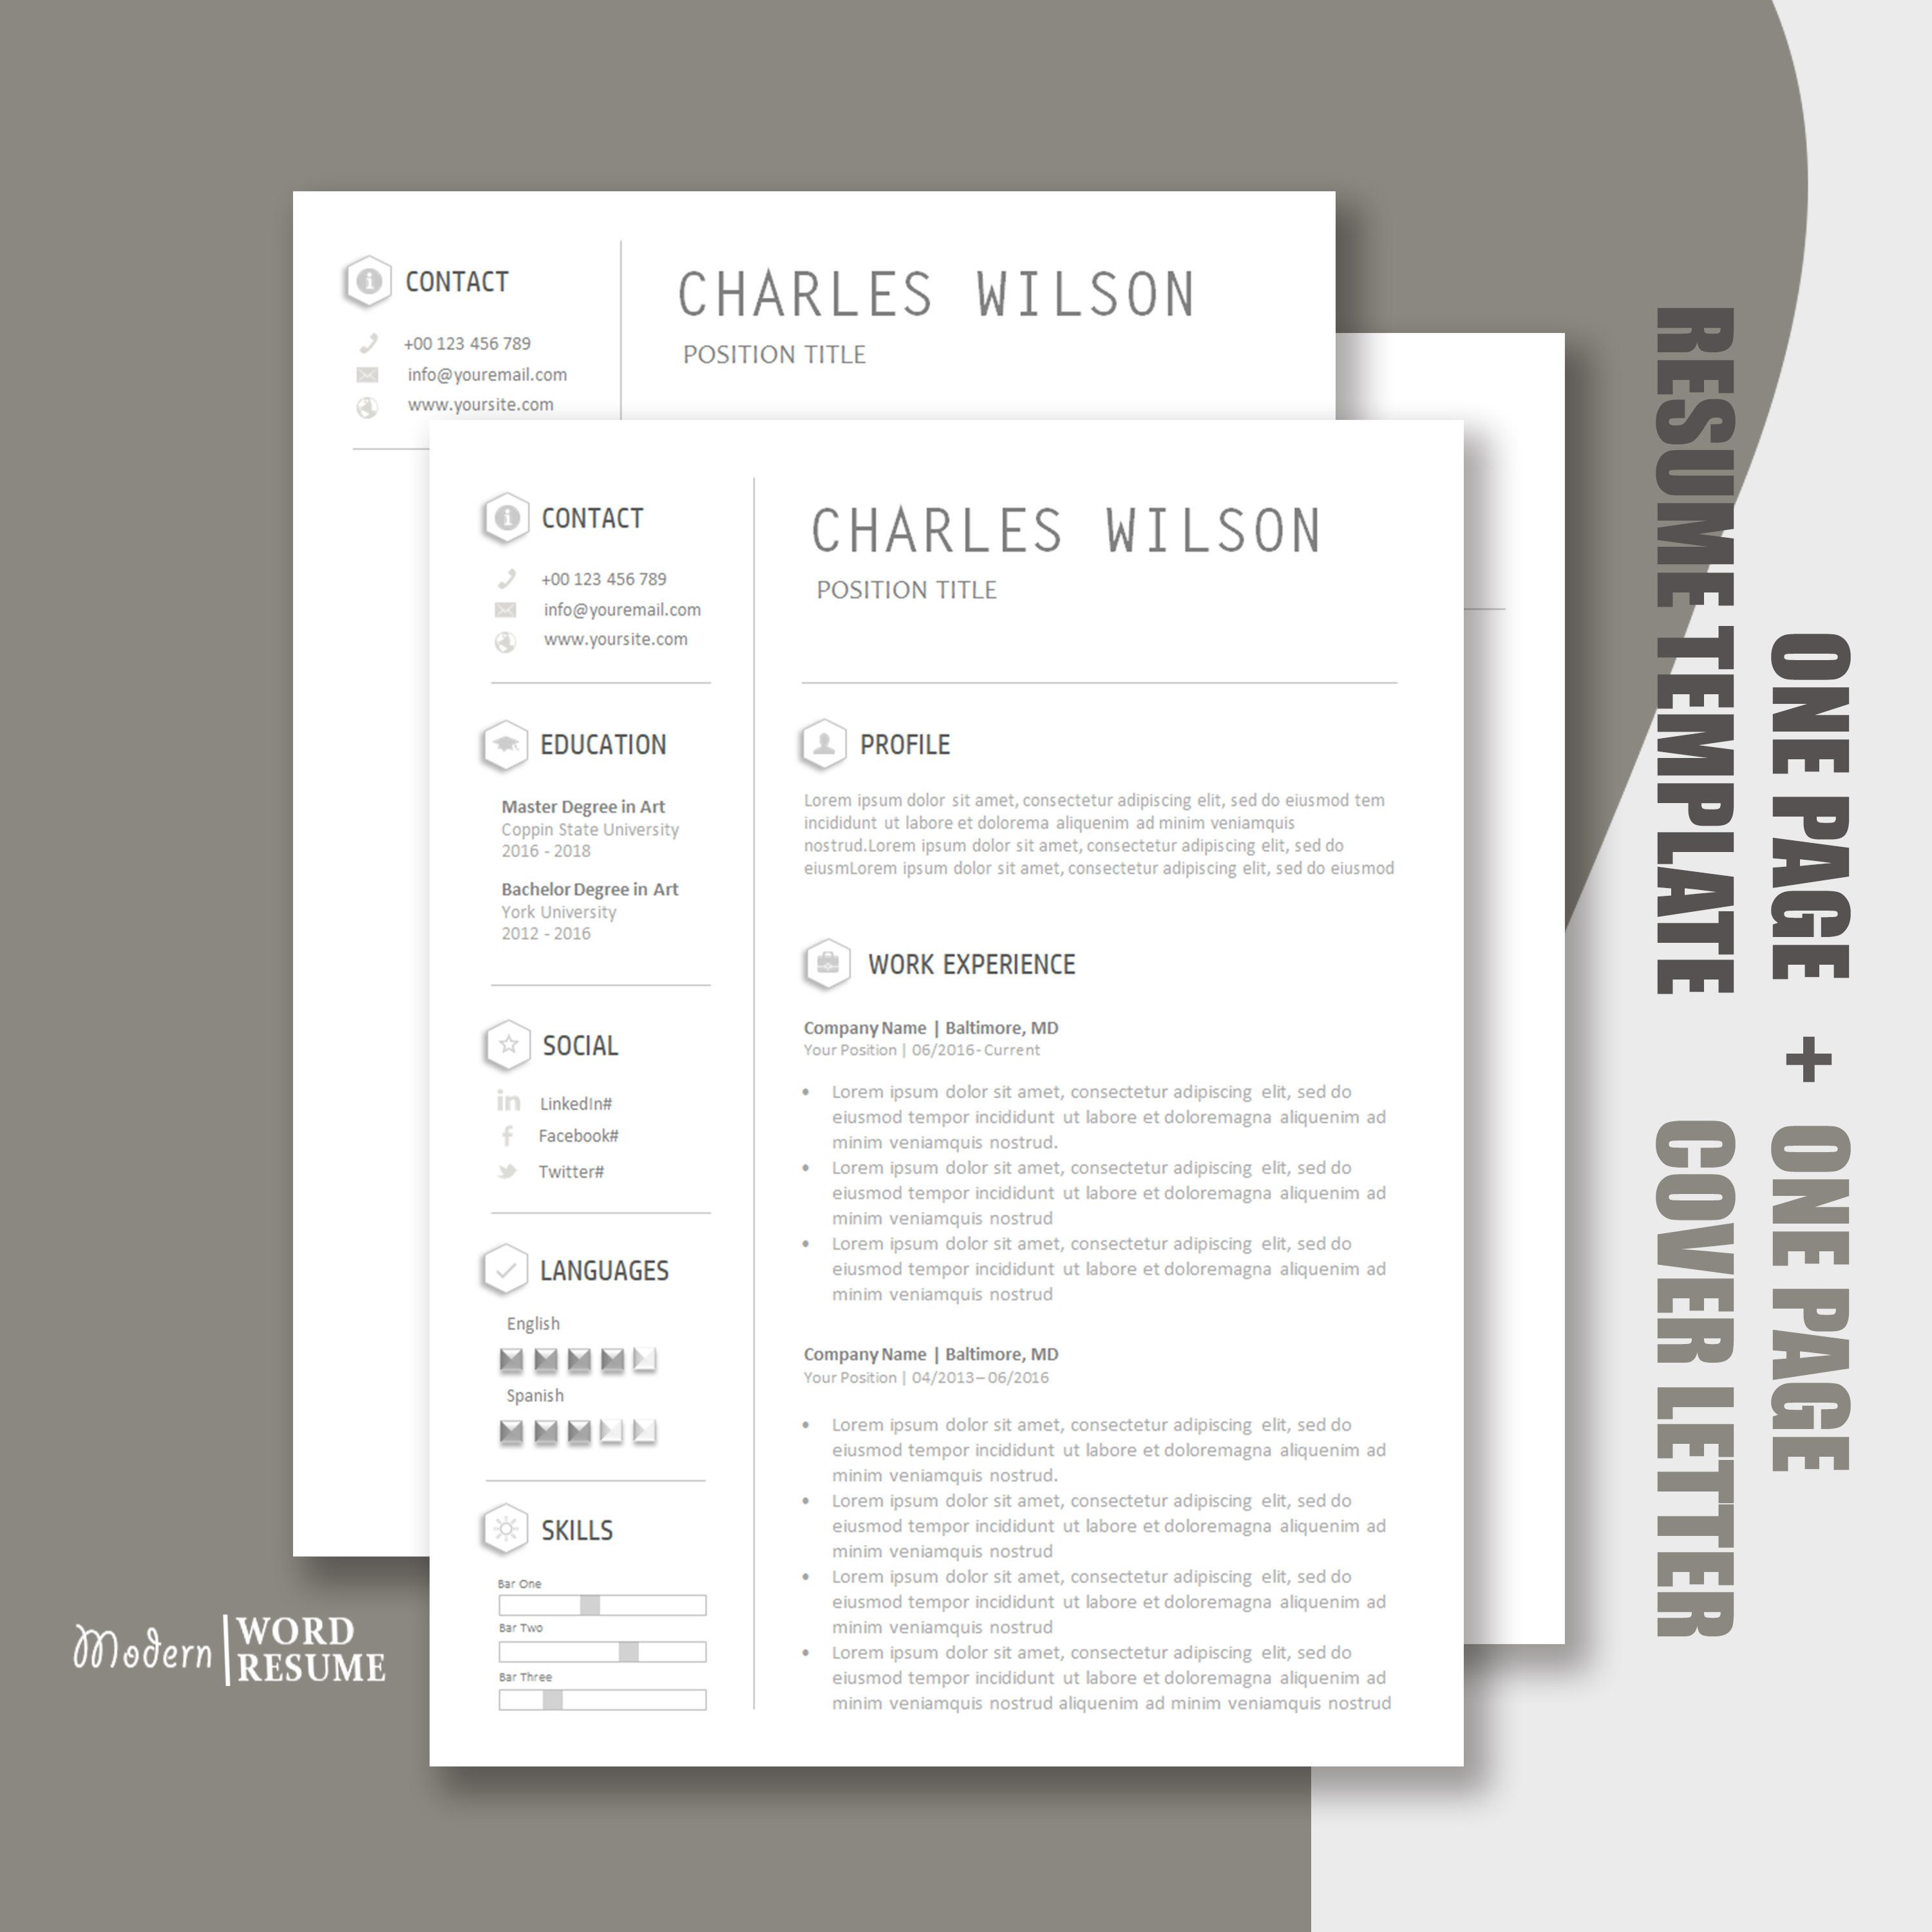 Resume Template One Page Resume Cover Letter Reference